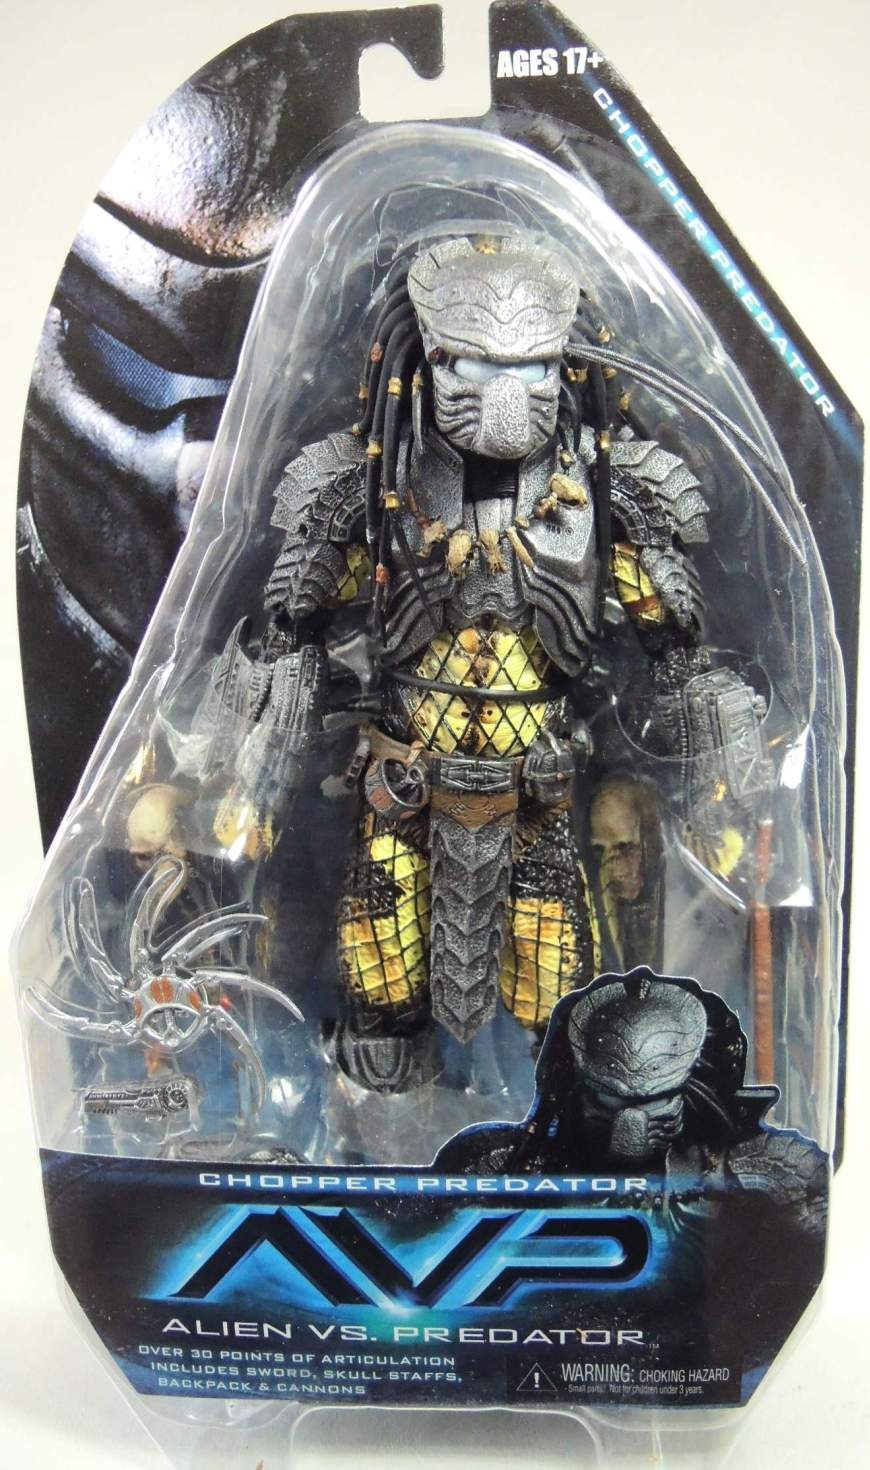 NECA Predator Series 14 Chopper  Predator NECA, Predators, Action Figures, 2015, scifi, movie